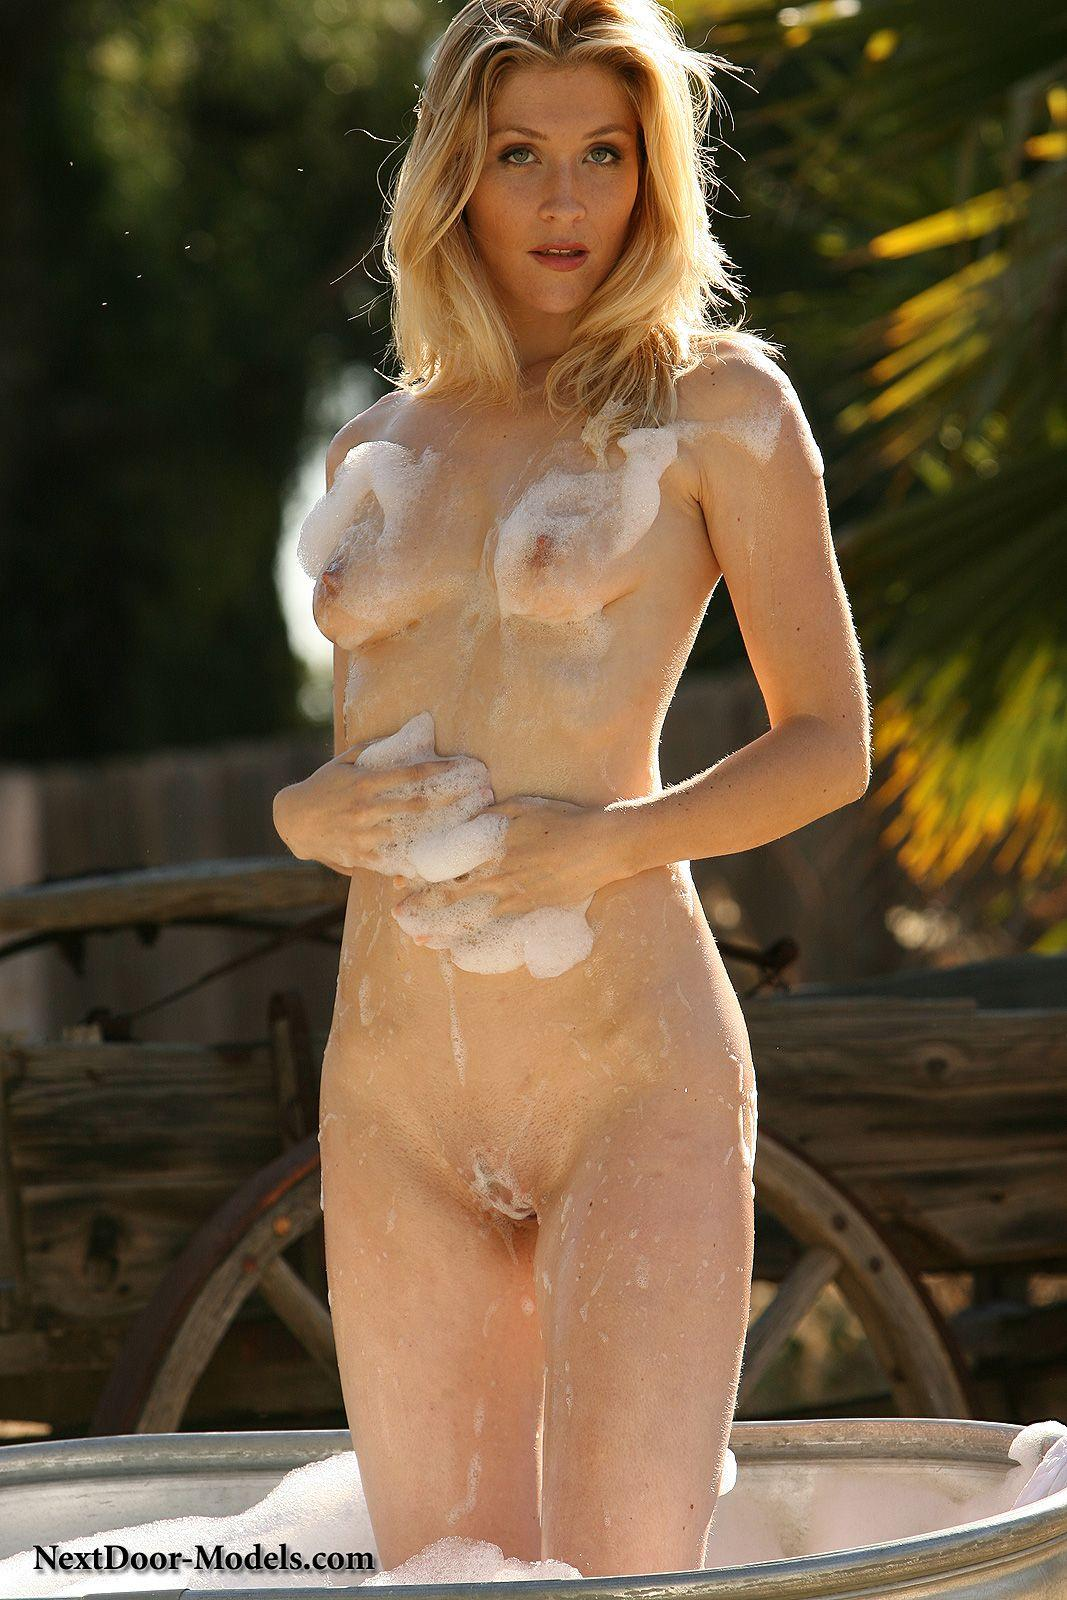 Pictures Of A Hot Blonde Girl Stripping Outside  Coed Cherry-3124